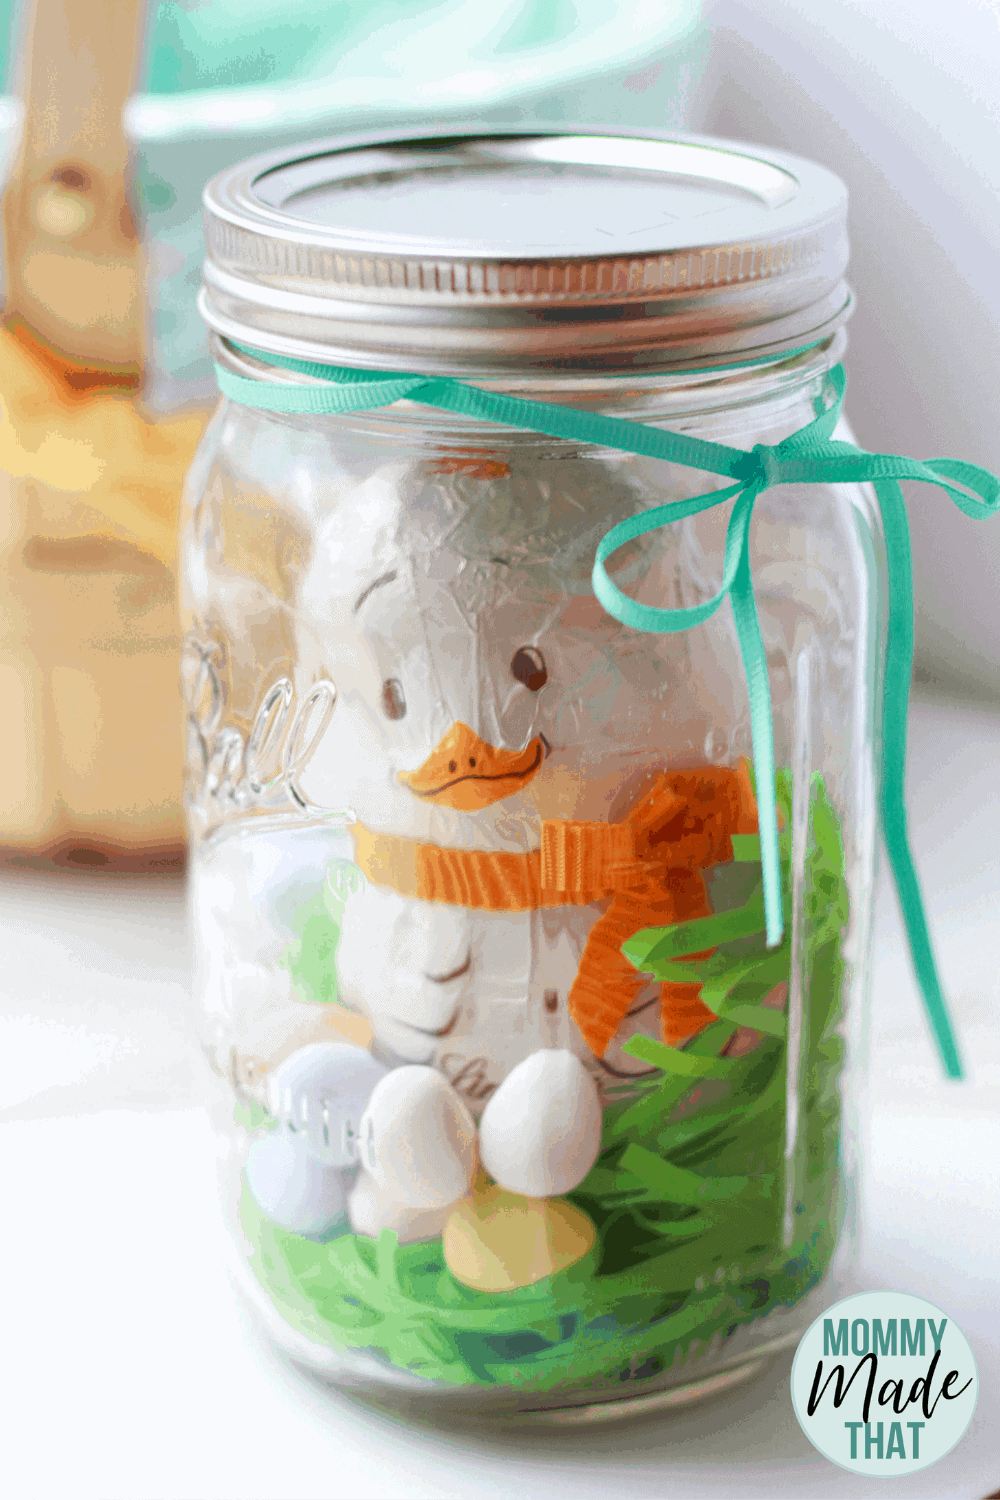 Chocolate Easter chick in a mason jar. Such a cute Easter Mason Jar craft. These would make such cute easter centerpieces or look amazing in an easter basket!